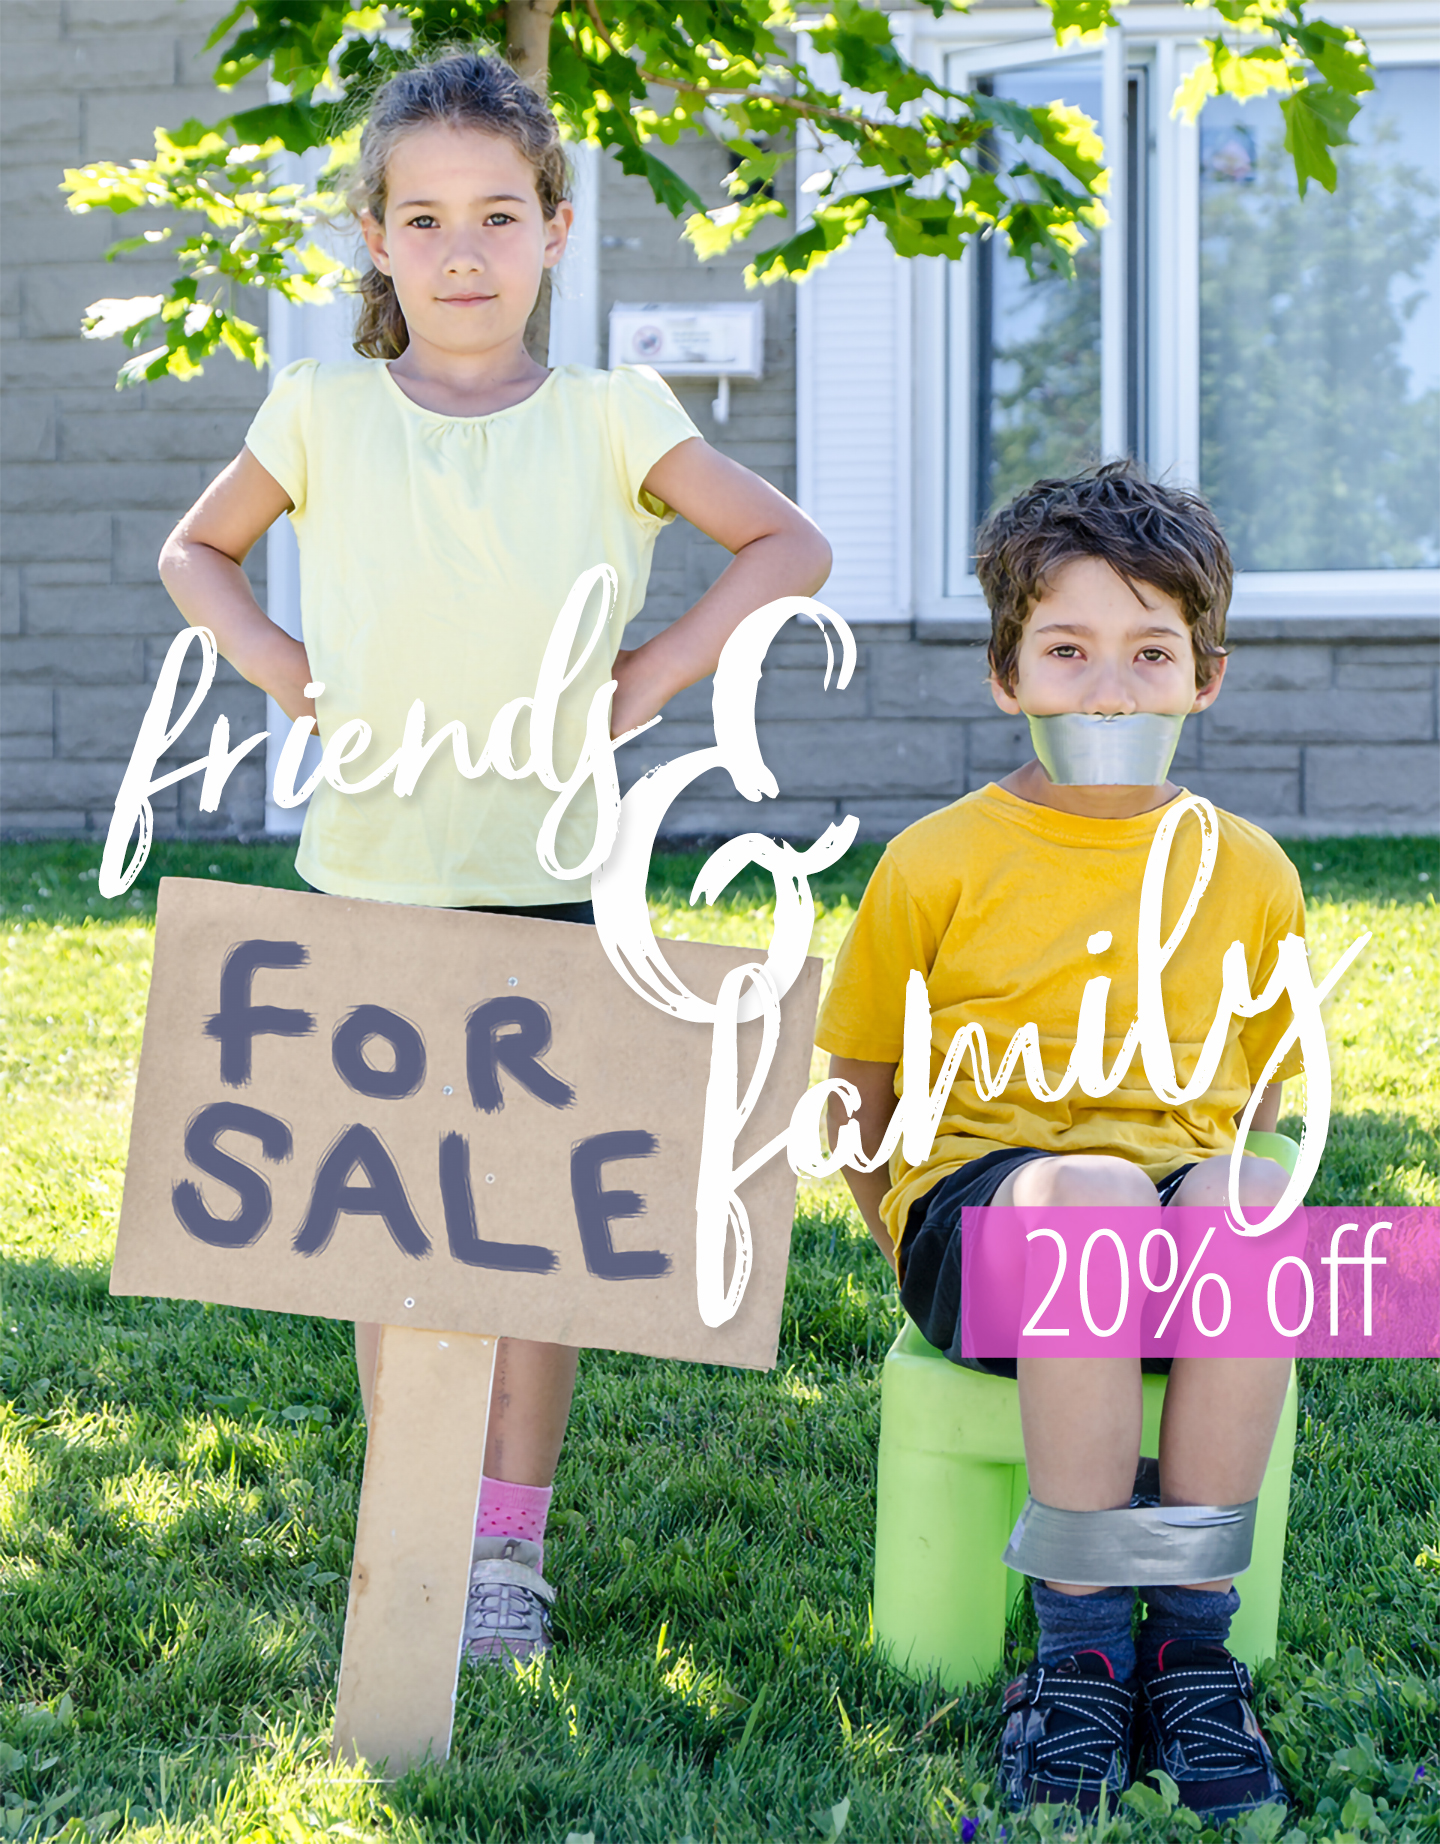 Family & Friends 20% off discount